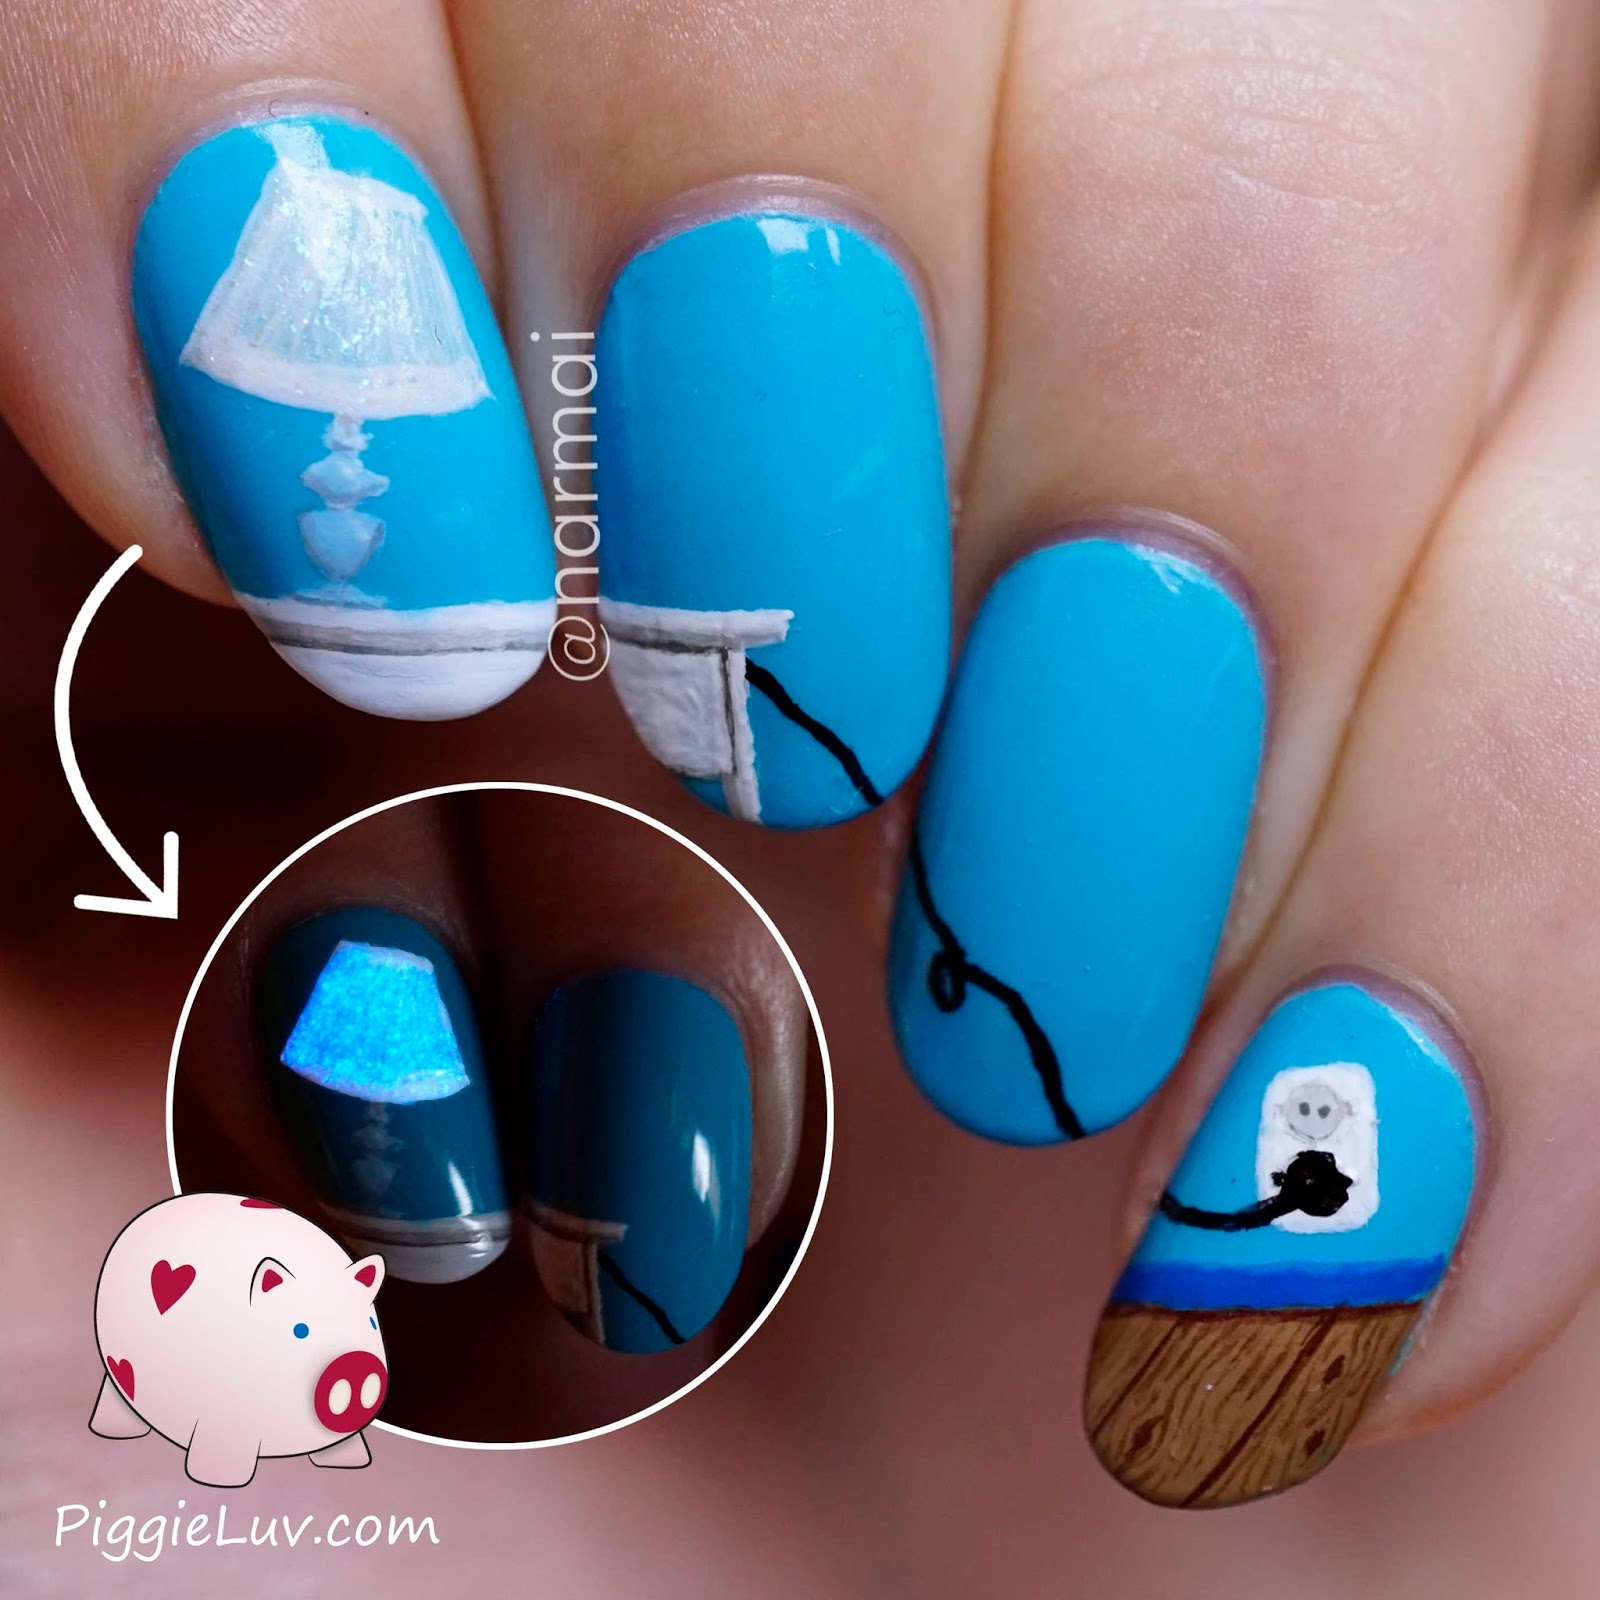 PiggieLuv: Glow in the dark table lamp nail art